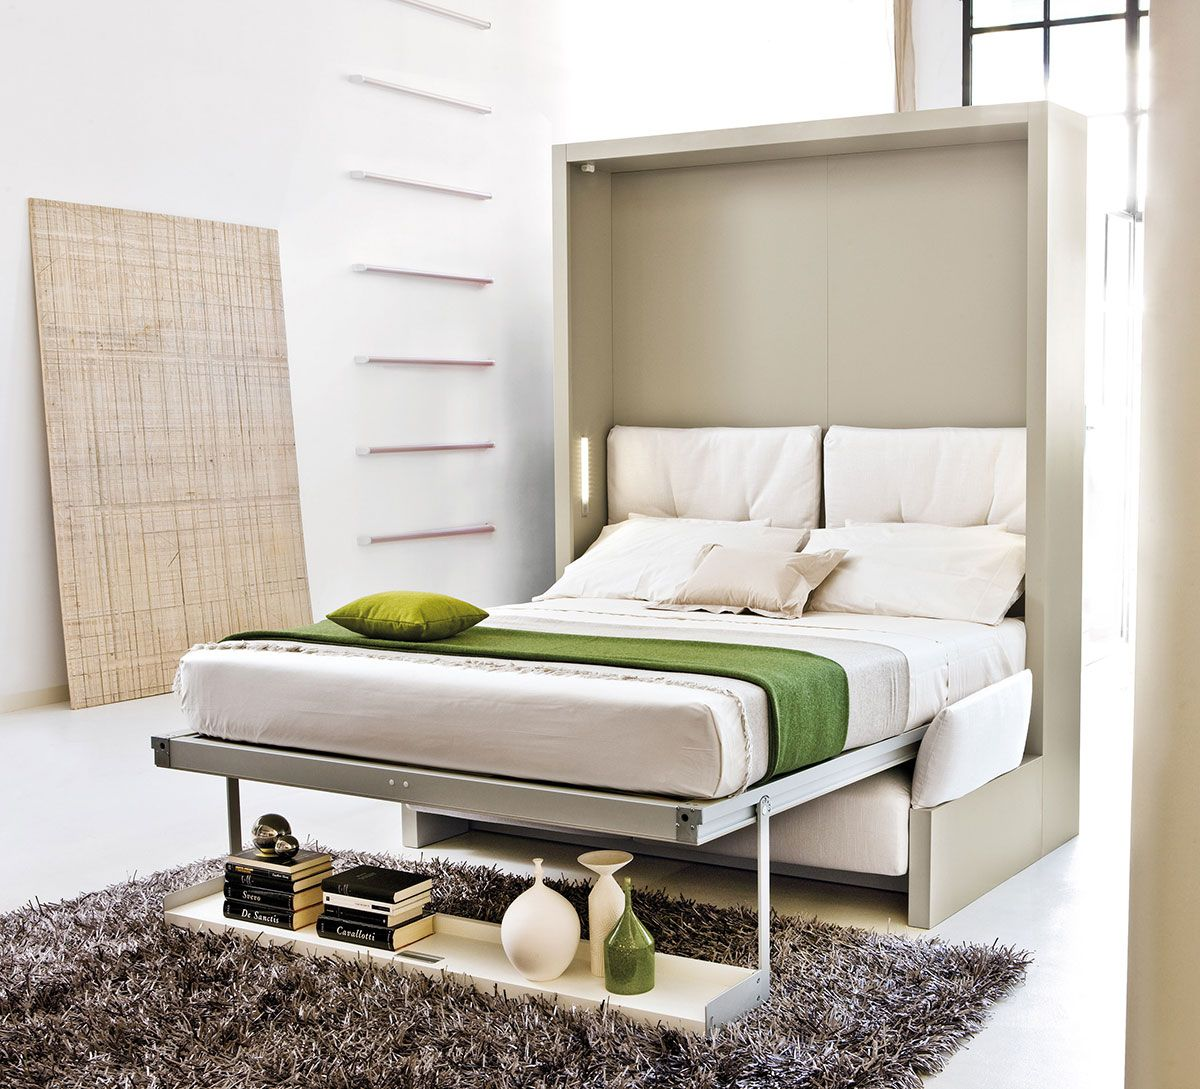 Apartments : Ikea Wall Beds Folding Beds And Gray On Wall Bed Along With Wall  Beds Ikea Sofa Wall Bed Modern Murphy Bed Decoration For An Apartment Modern  ...